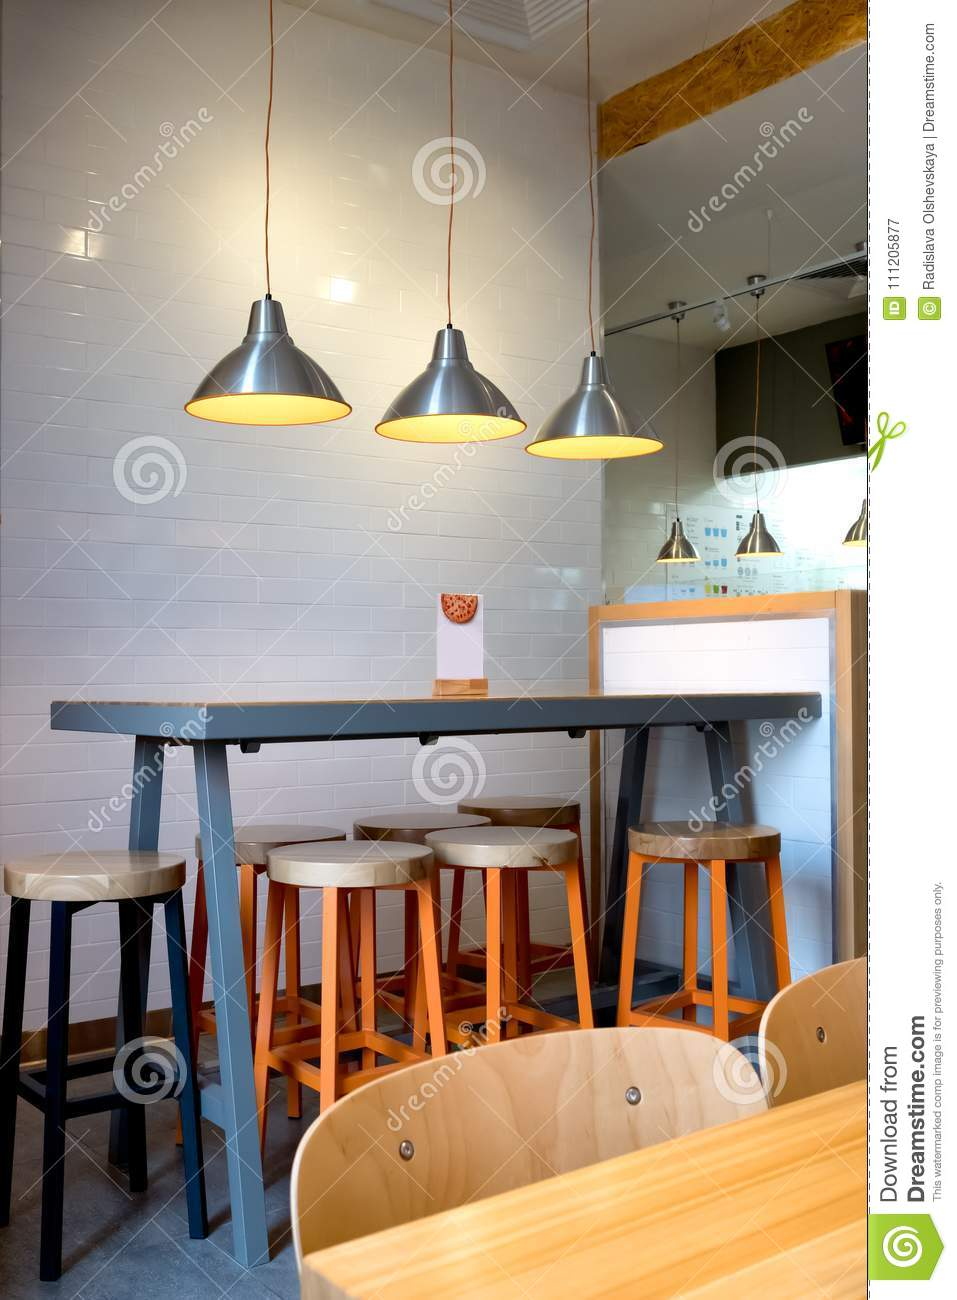 Interior Decoration Of Cafe Stock Image - Image of style ...